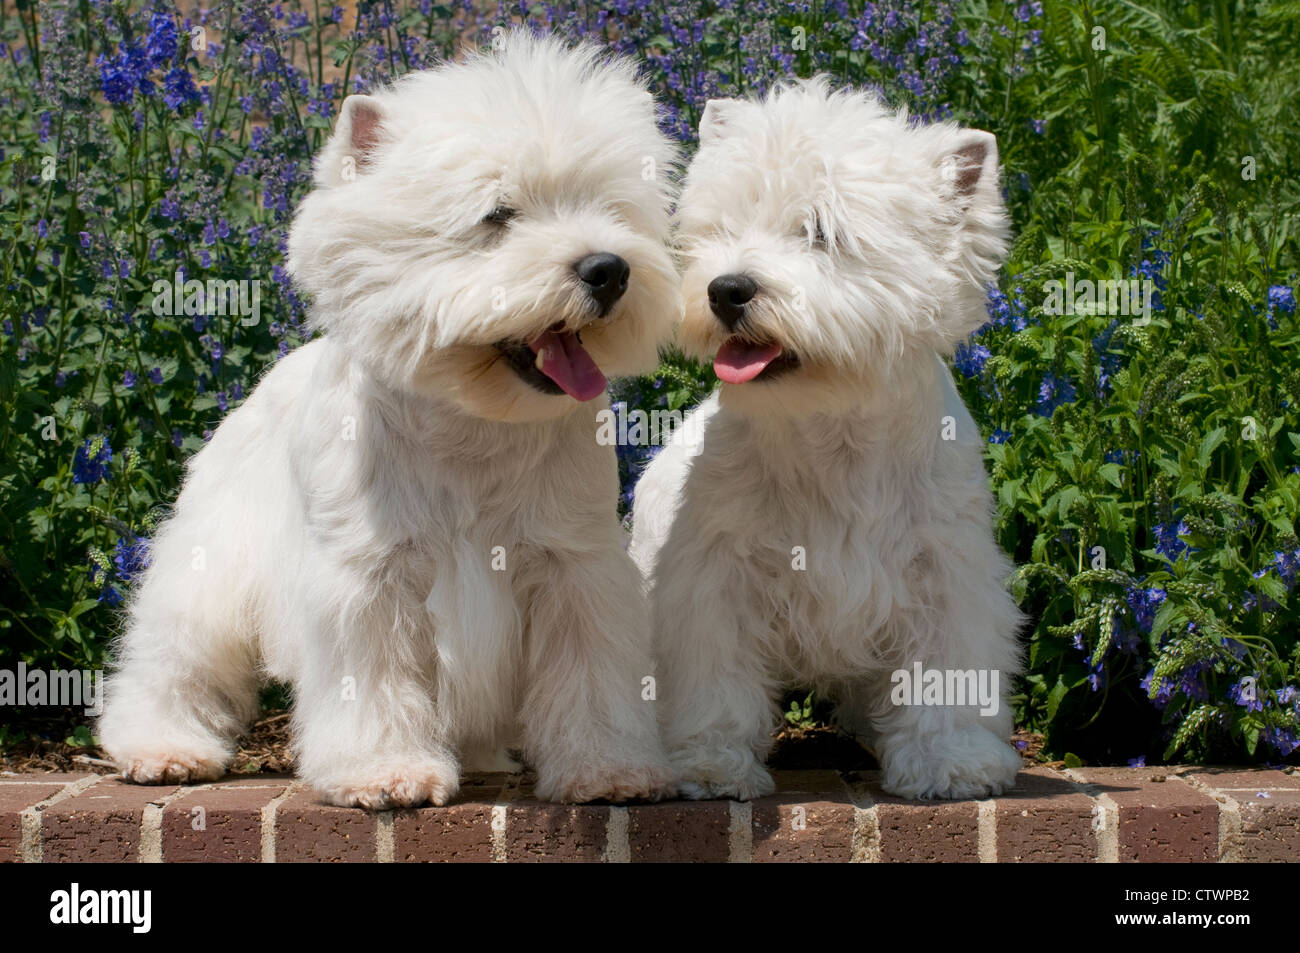 Two West Highland Terriers - Stock Image